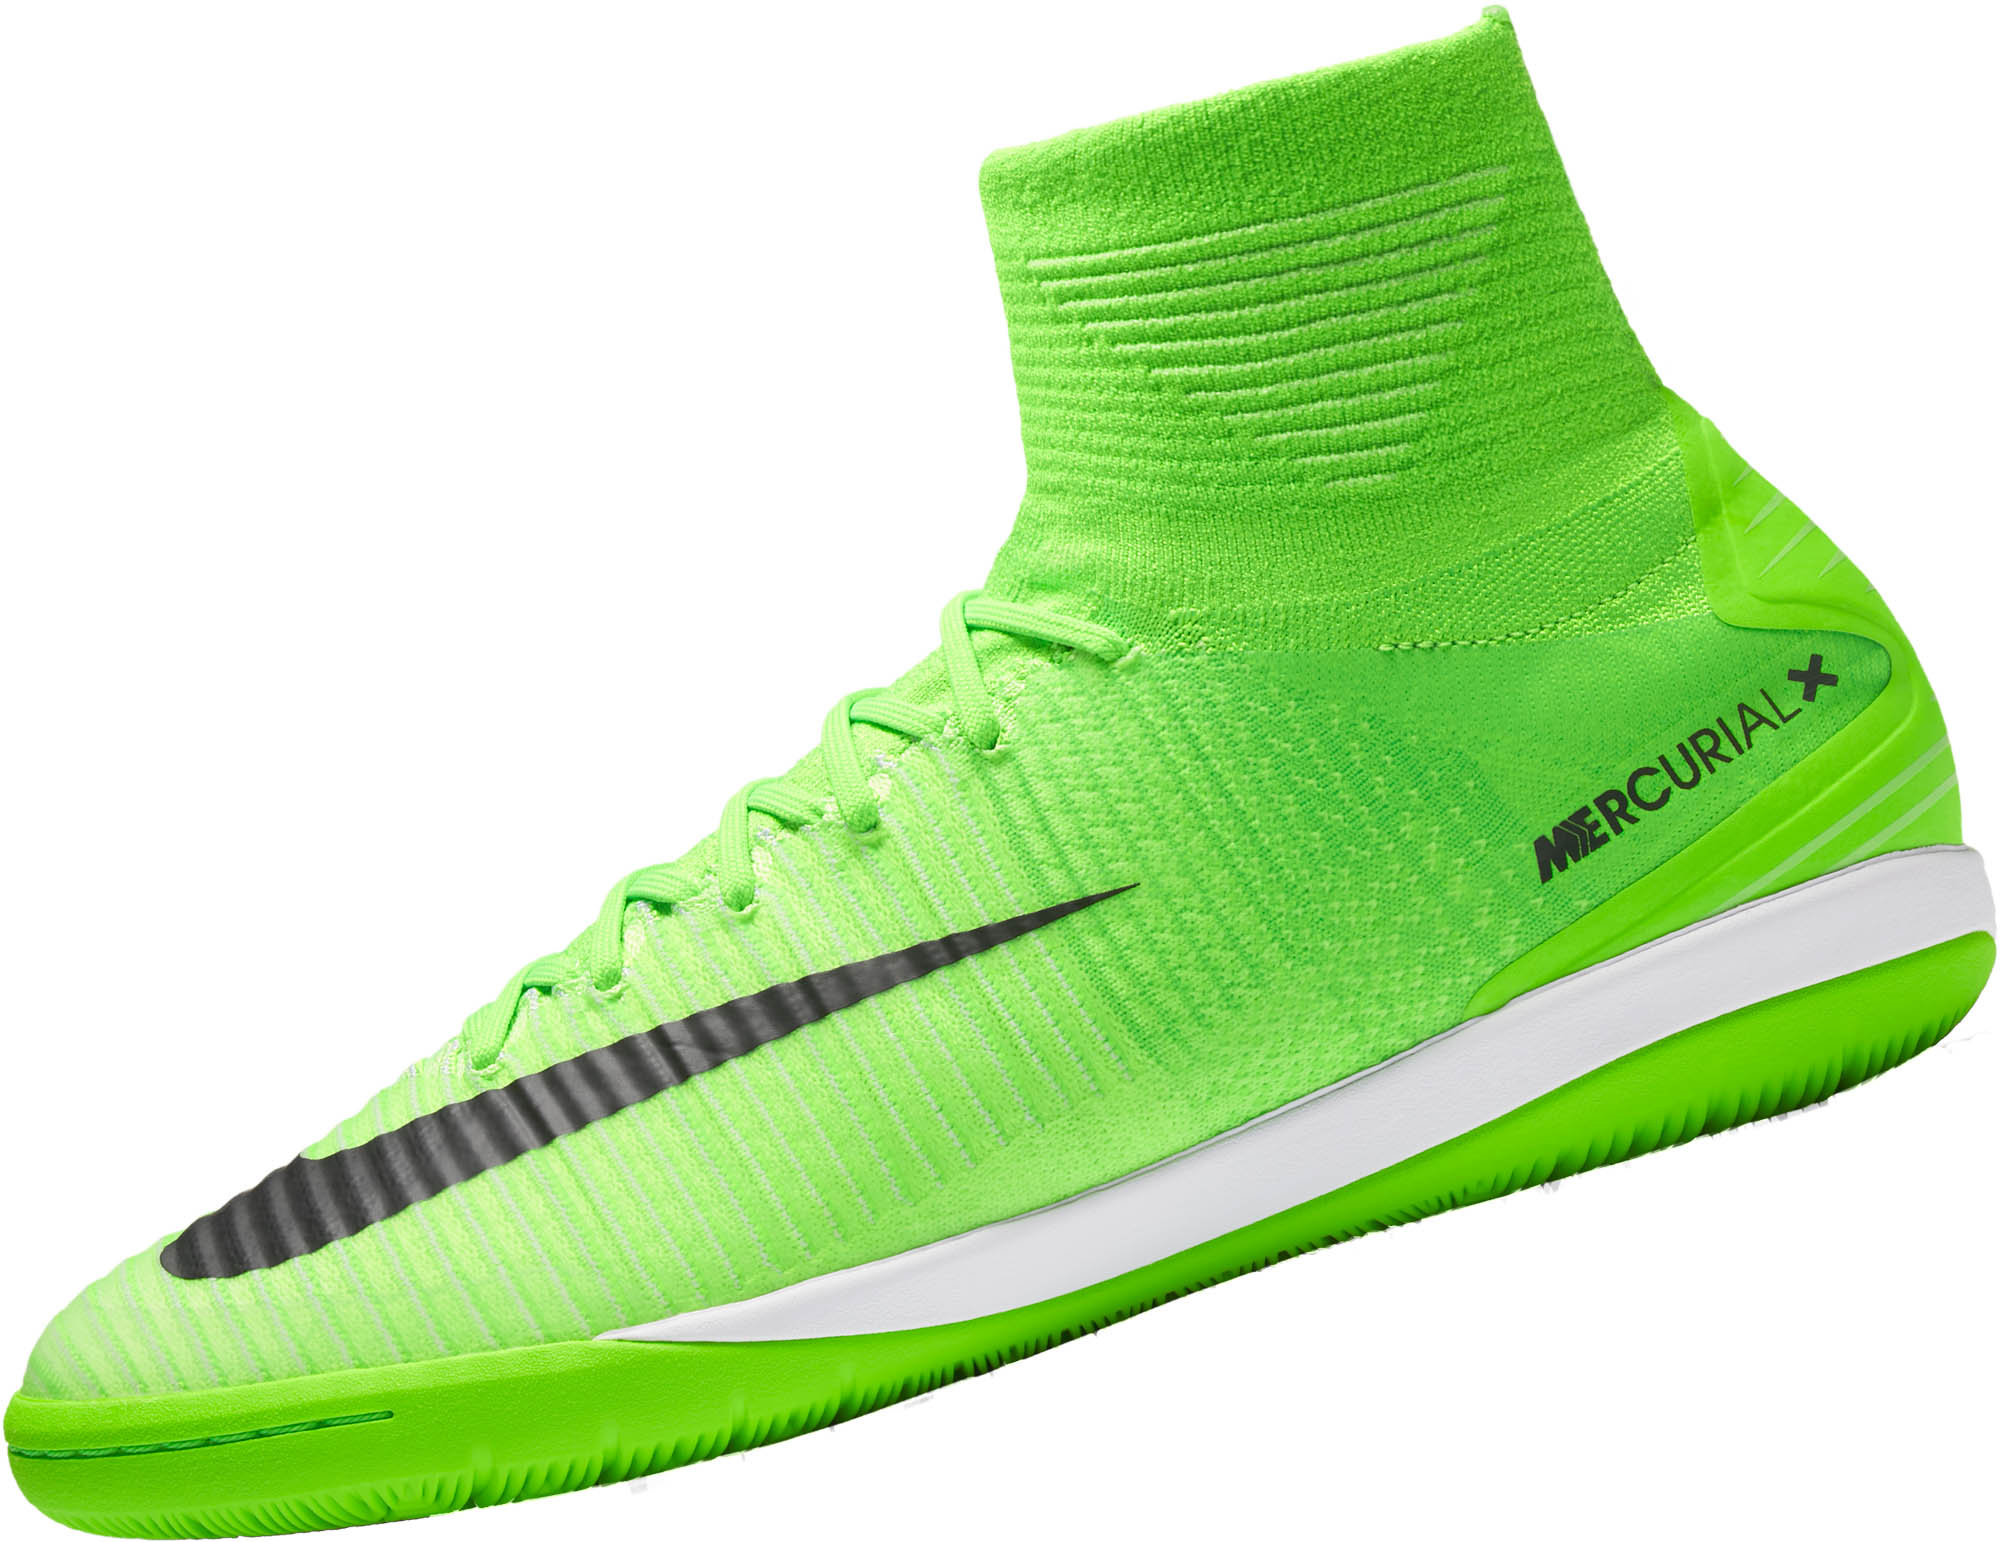 Nike MercurialX Proximo II IC – Electric Green Black 719bbbeca7